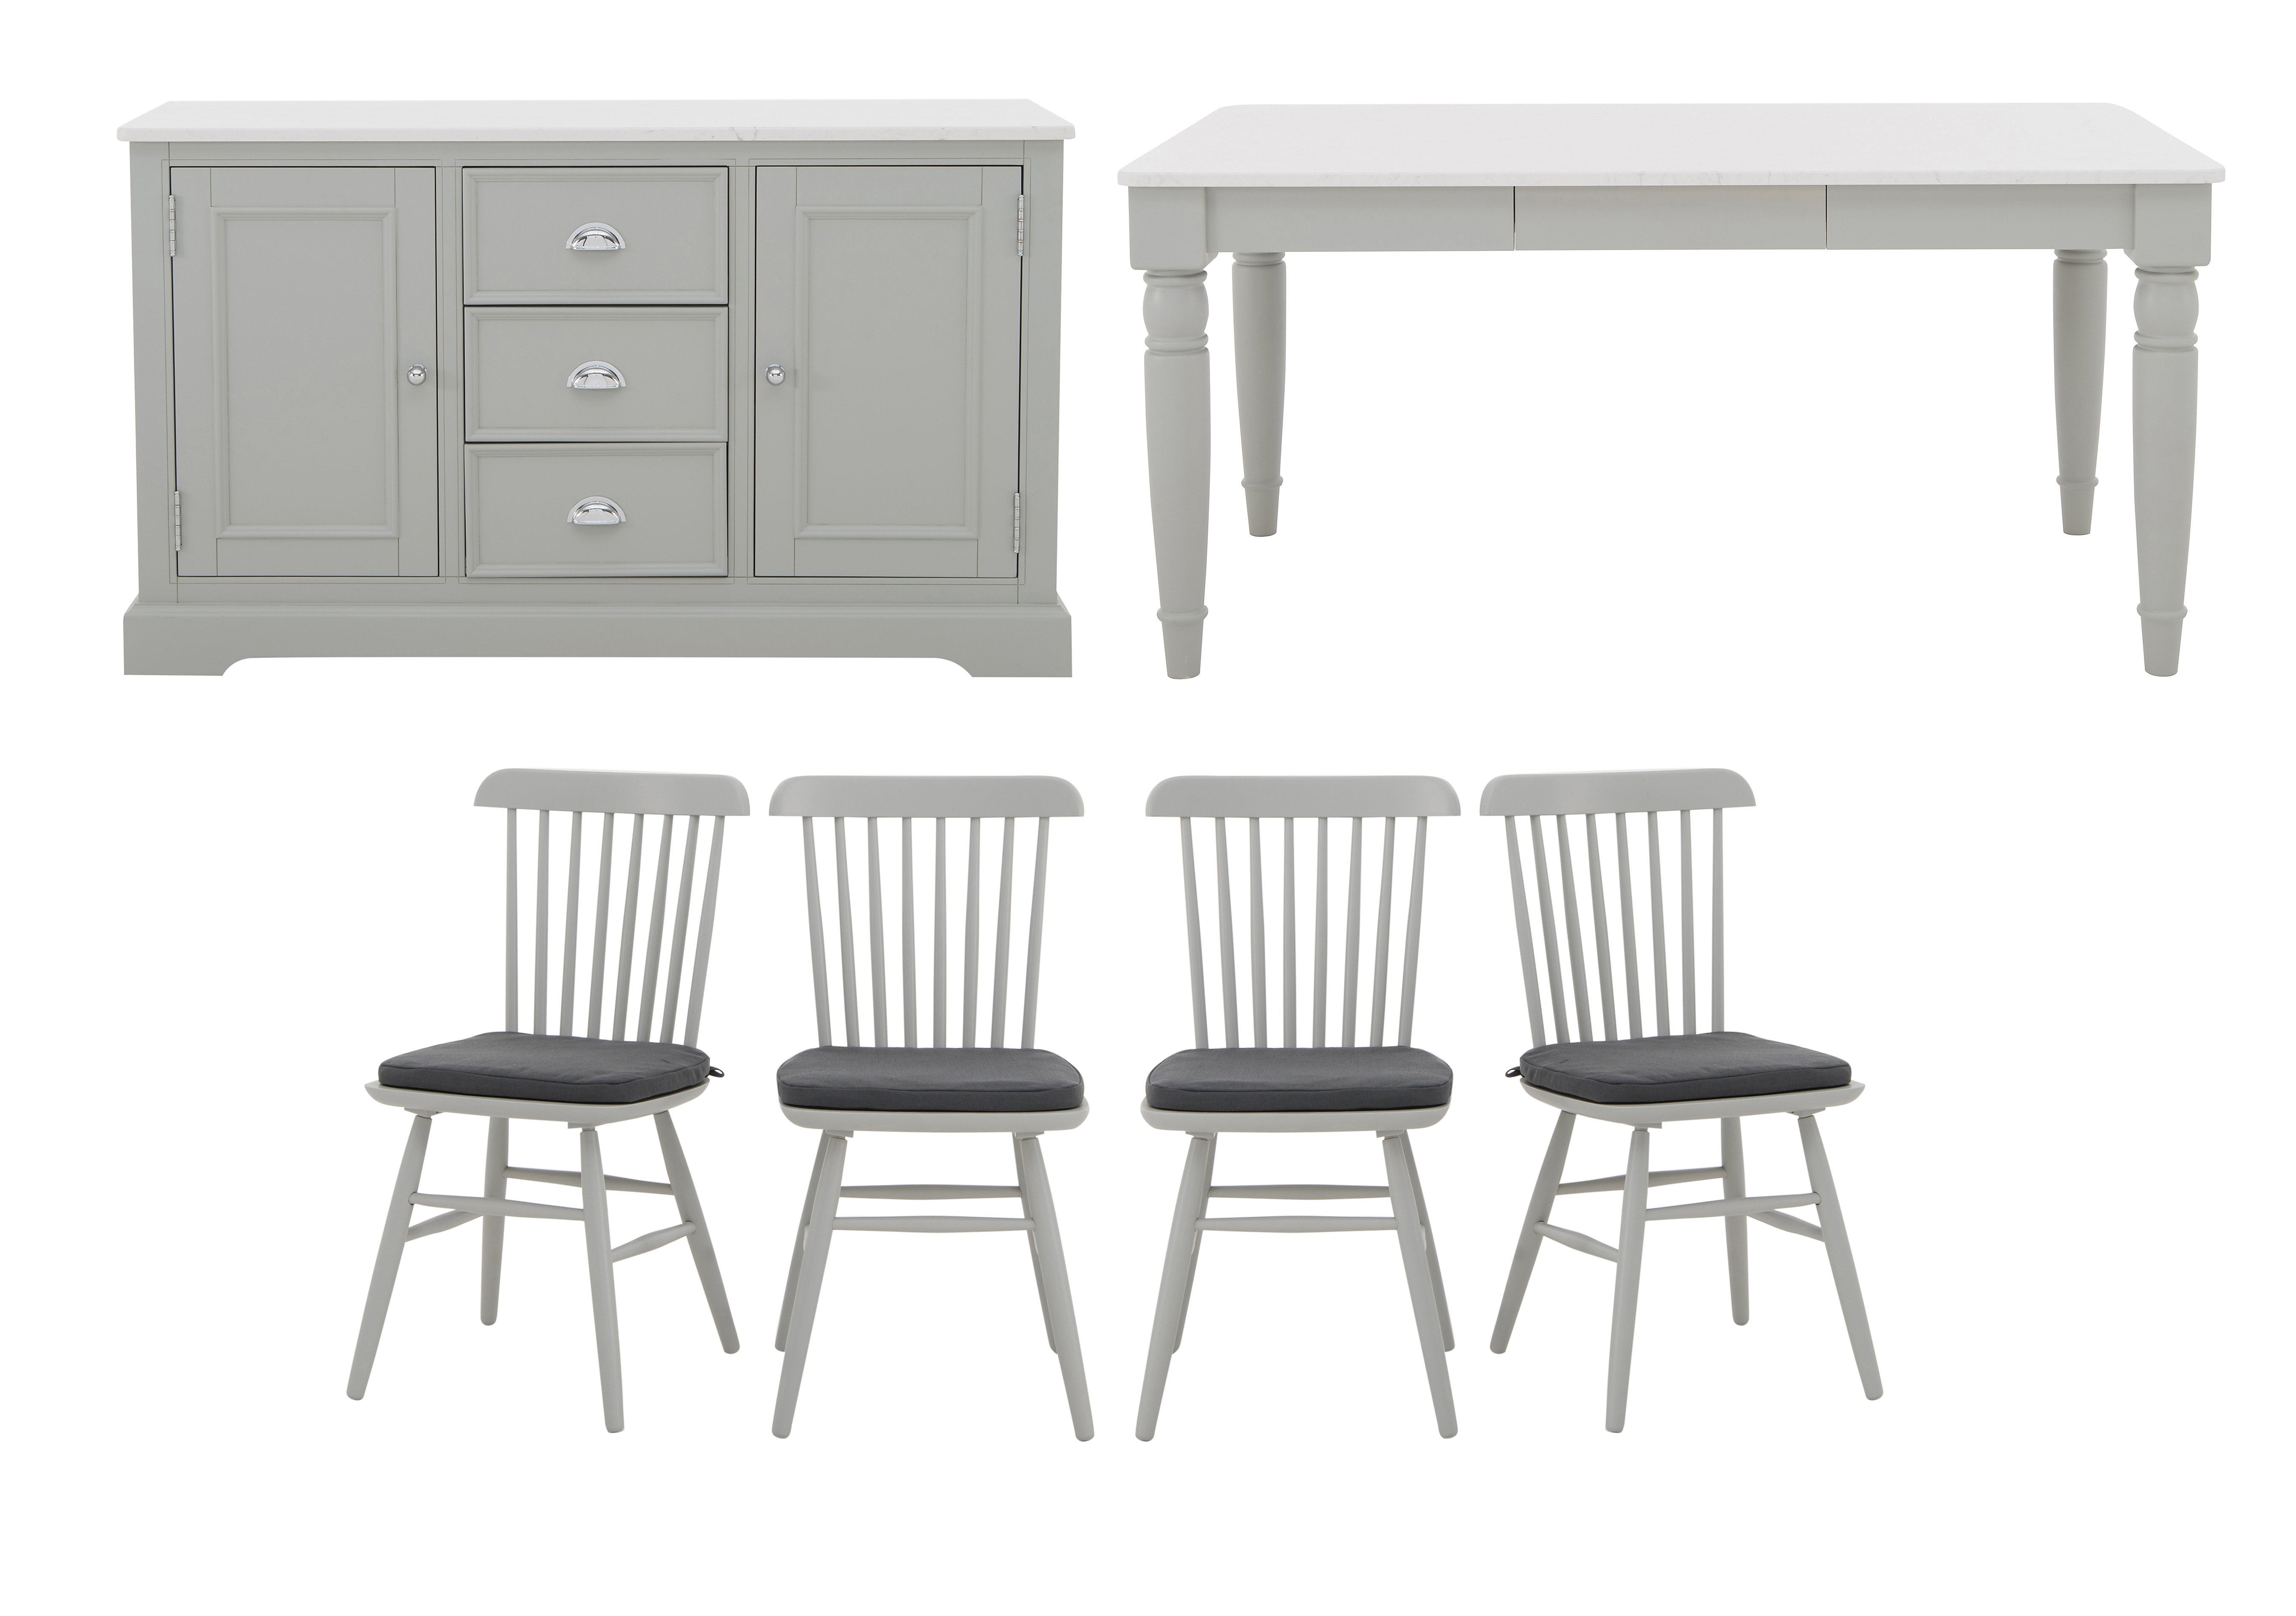 Padstow Dining Table 4 Spindle Chairs and Sideboard Set